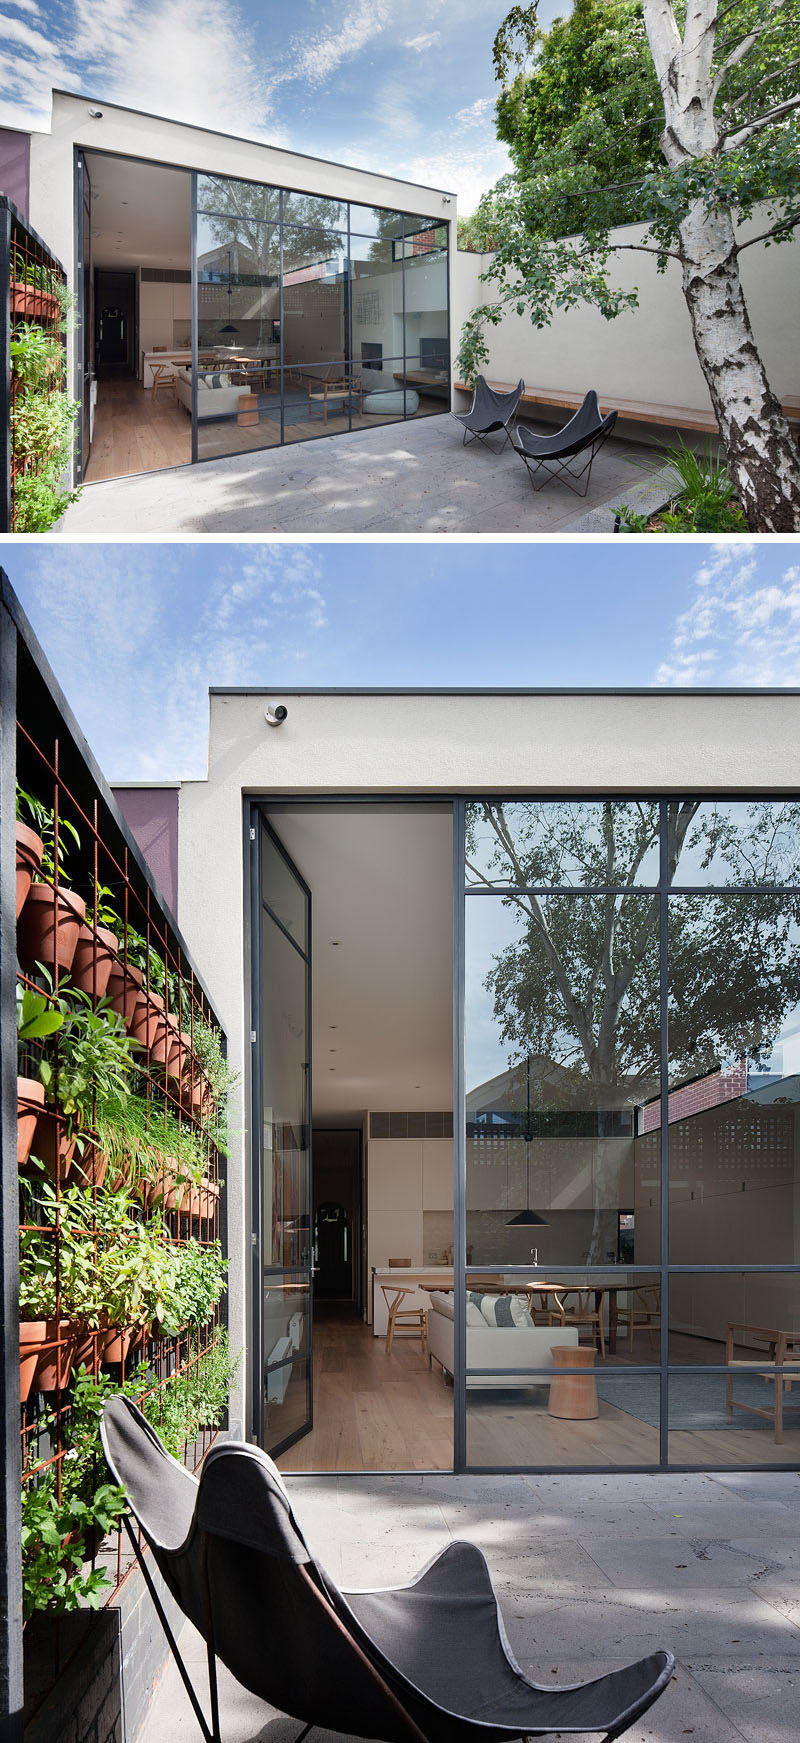 In this modern courtyard, a high wall and black fence provide privacy from the neighbors. A built-in bench and a couple of outdoor chairs create spaces to relax, and built-in planters and a wall of potted plants add a touch of nature. #Landscaping #Courtyard #PlantWall #Windows